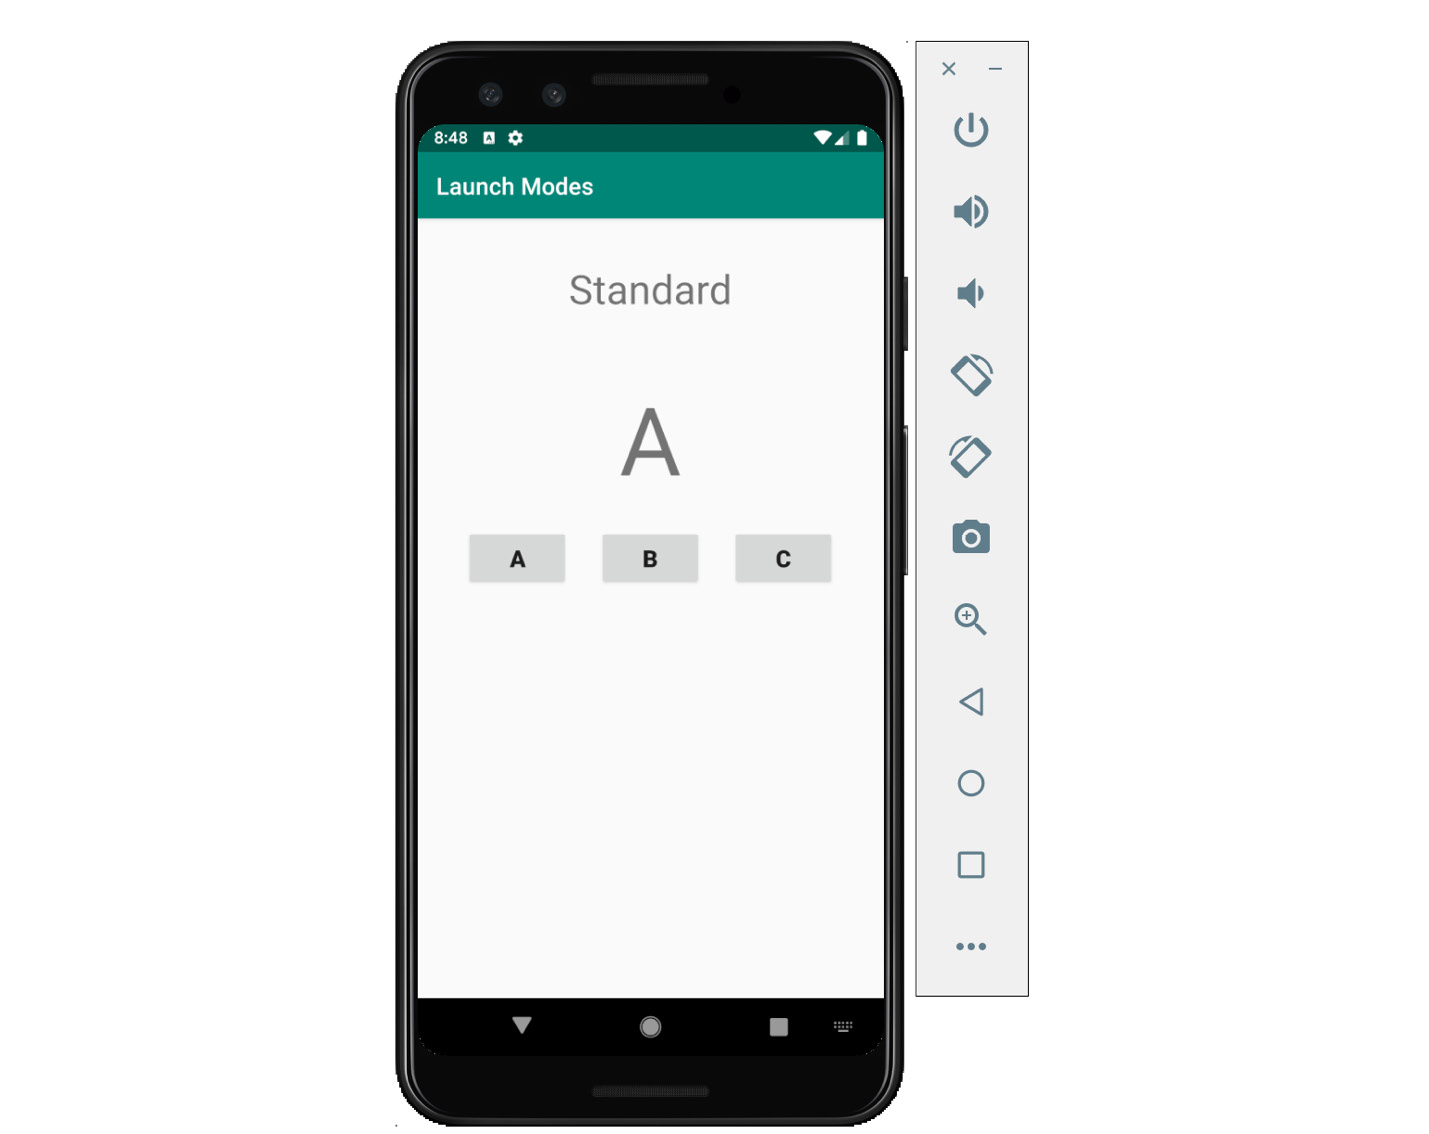 Figure 2.21: The app displaying standard activity